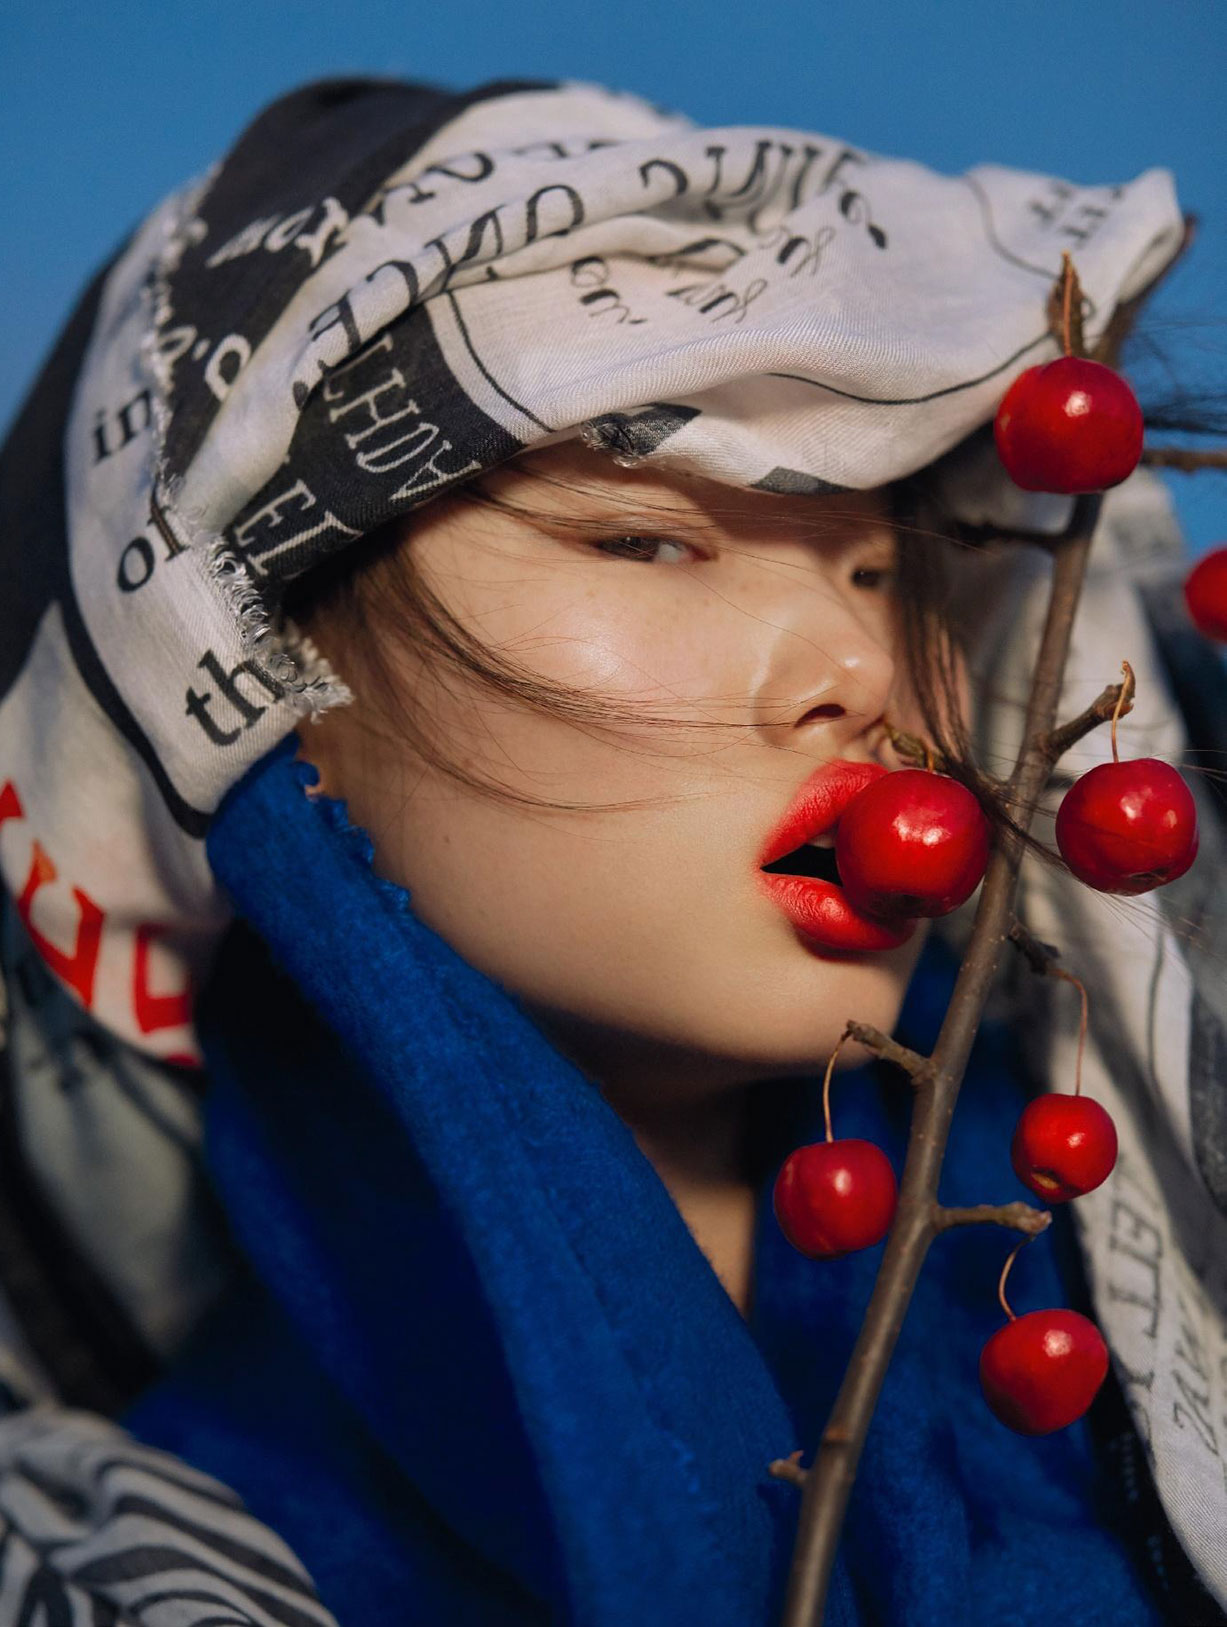 Madame Butterfly / Yoon Young Bae by Txema Yeste - Numero Magazine february 2018